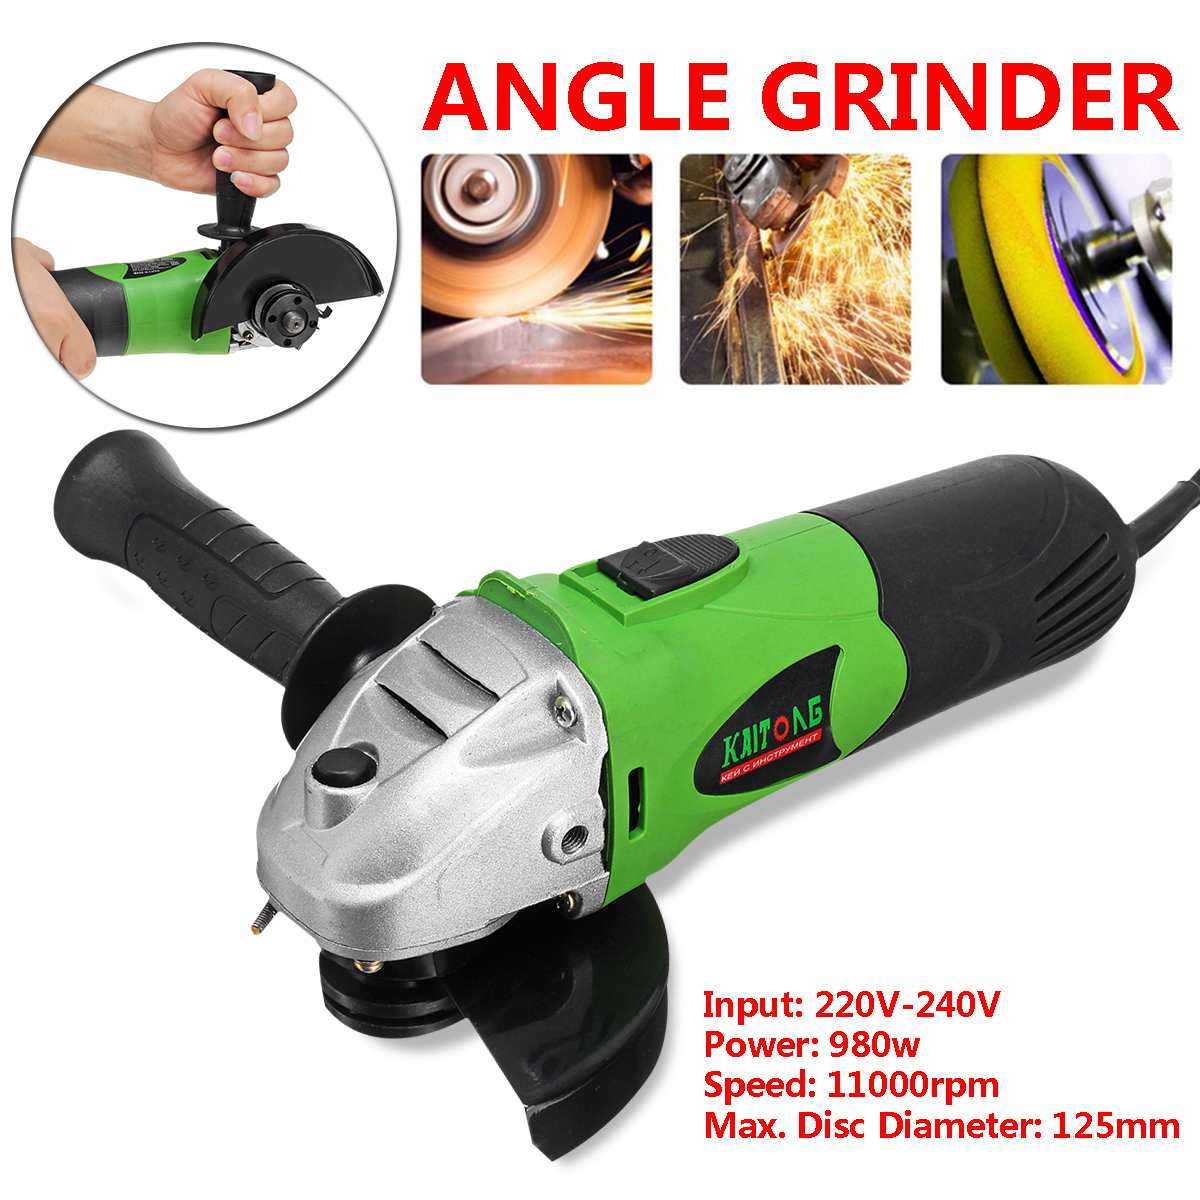 980W Electric Angle Grinder 115-125mm Grinding Machine Metal Cutting Tool 11000RPM Adjustable Anti-Slip EU PLug Powerful Protect980W Electric Angle Grinder 115-125mm Grinding Machine Metal Cutting Tool 11000RPM Adjustable Anti-Slip EU PLug Powerful Protect